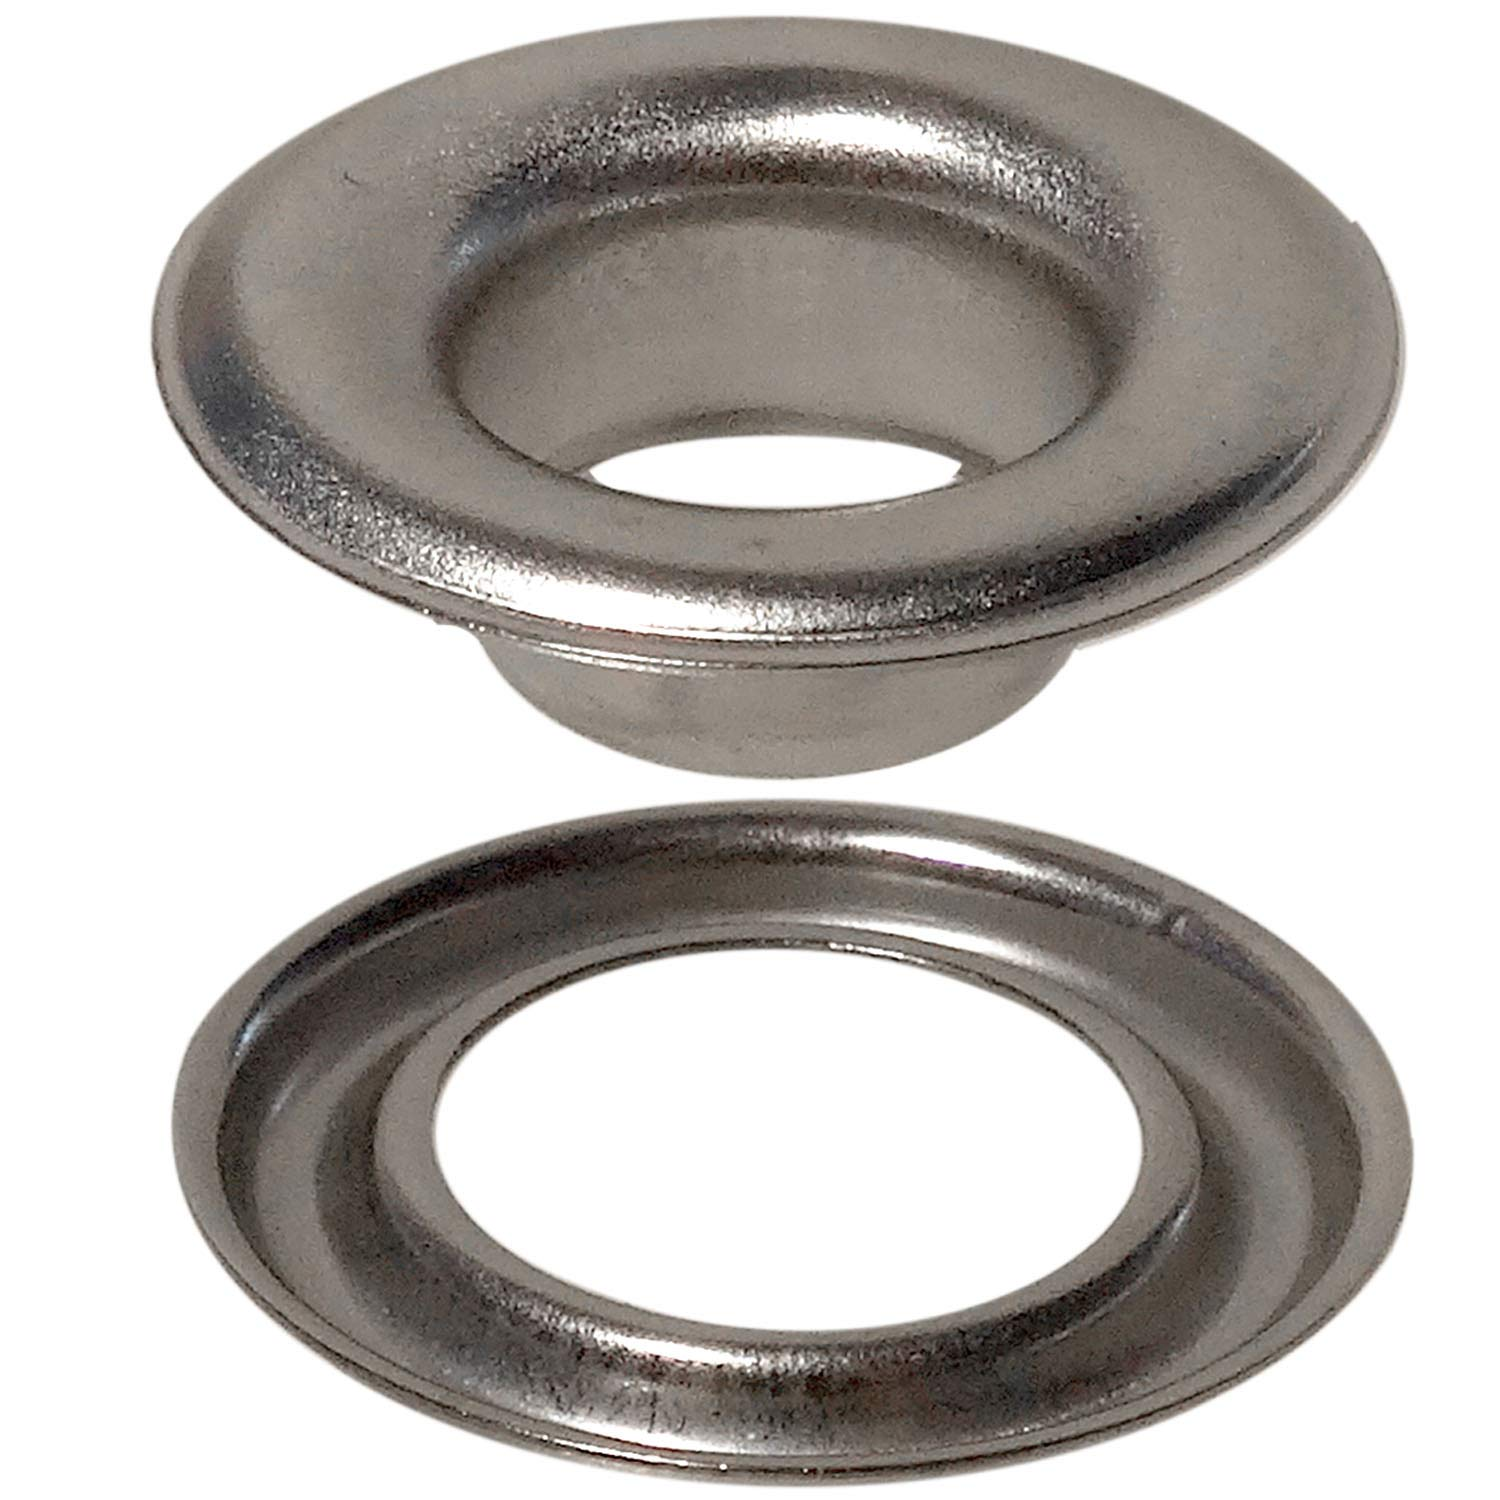 Stimpson Self-Piercing Grommet and Washer Stainless Steel 304 Reliable, Durable, Heavy-Duty #2 Set (500 pieces of each) by Stimpson Co., Inc